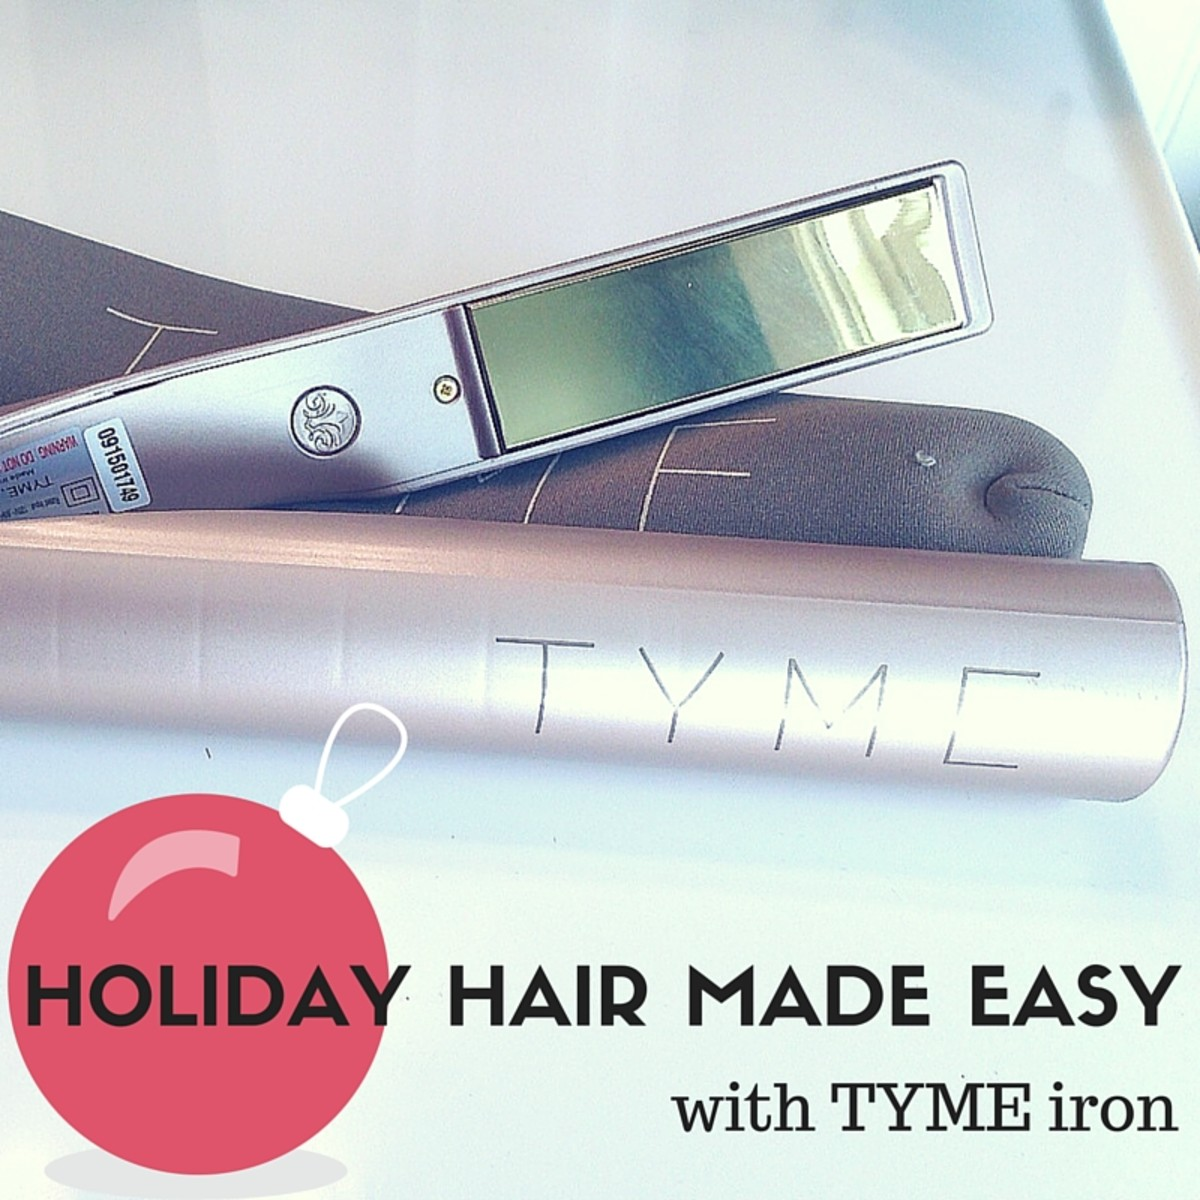 HOLIDAY HAIR MADE EASY